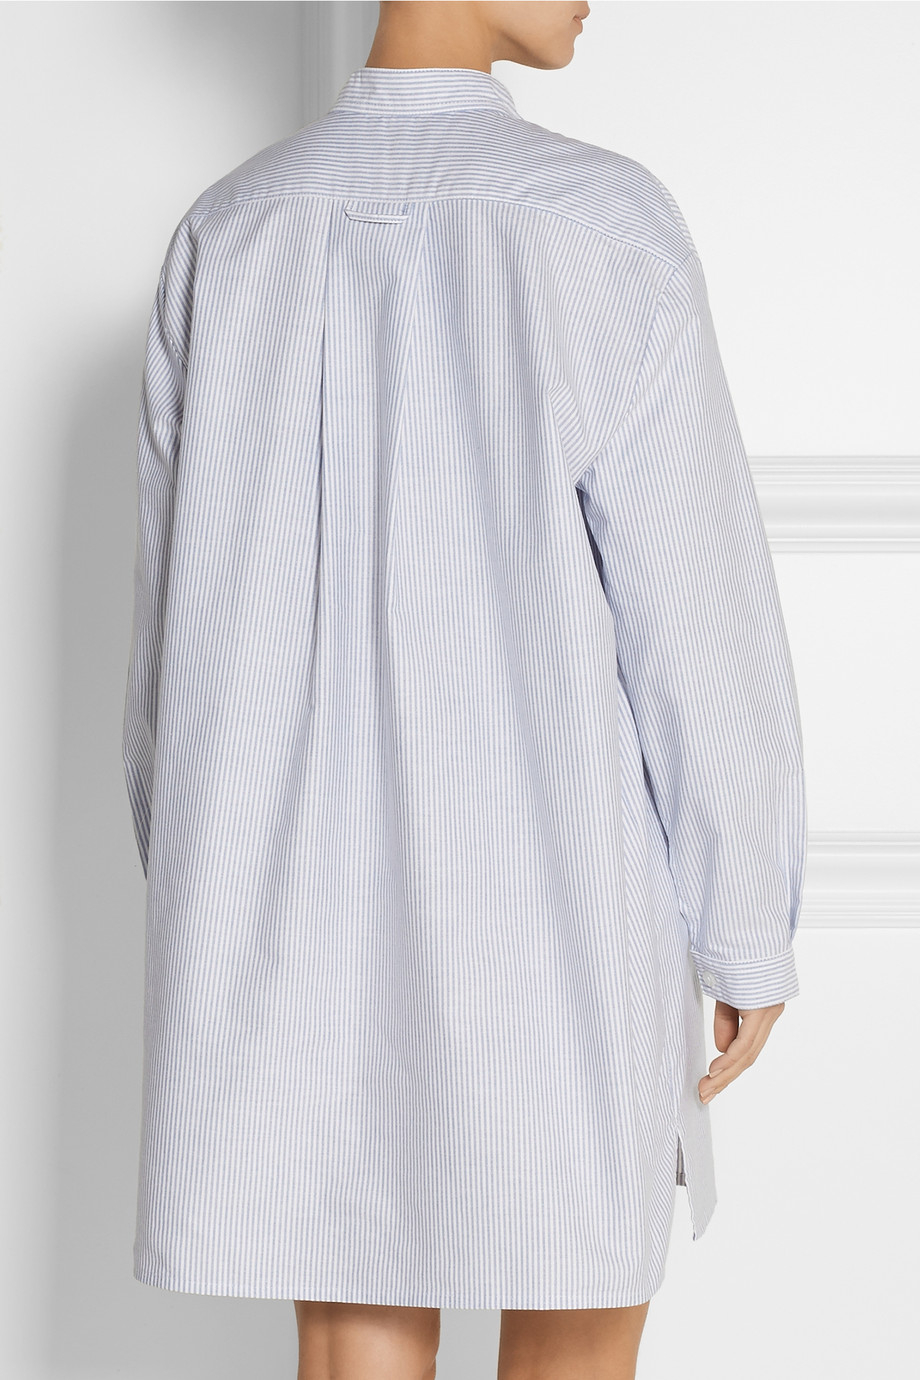 Lyst - The Sleep Shirt Long Striped Cotton Oxford Nightshirt in Blue 9c7939f27